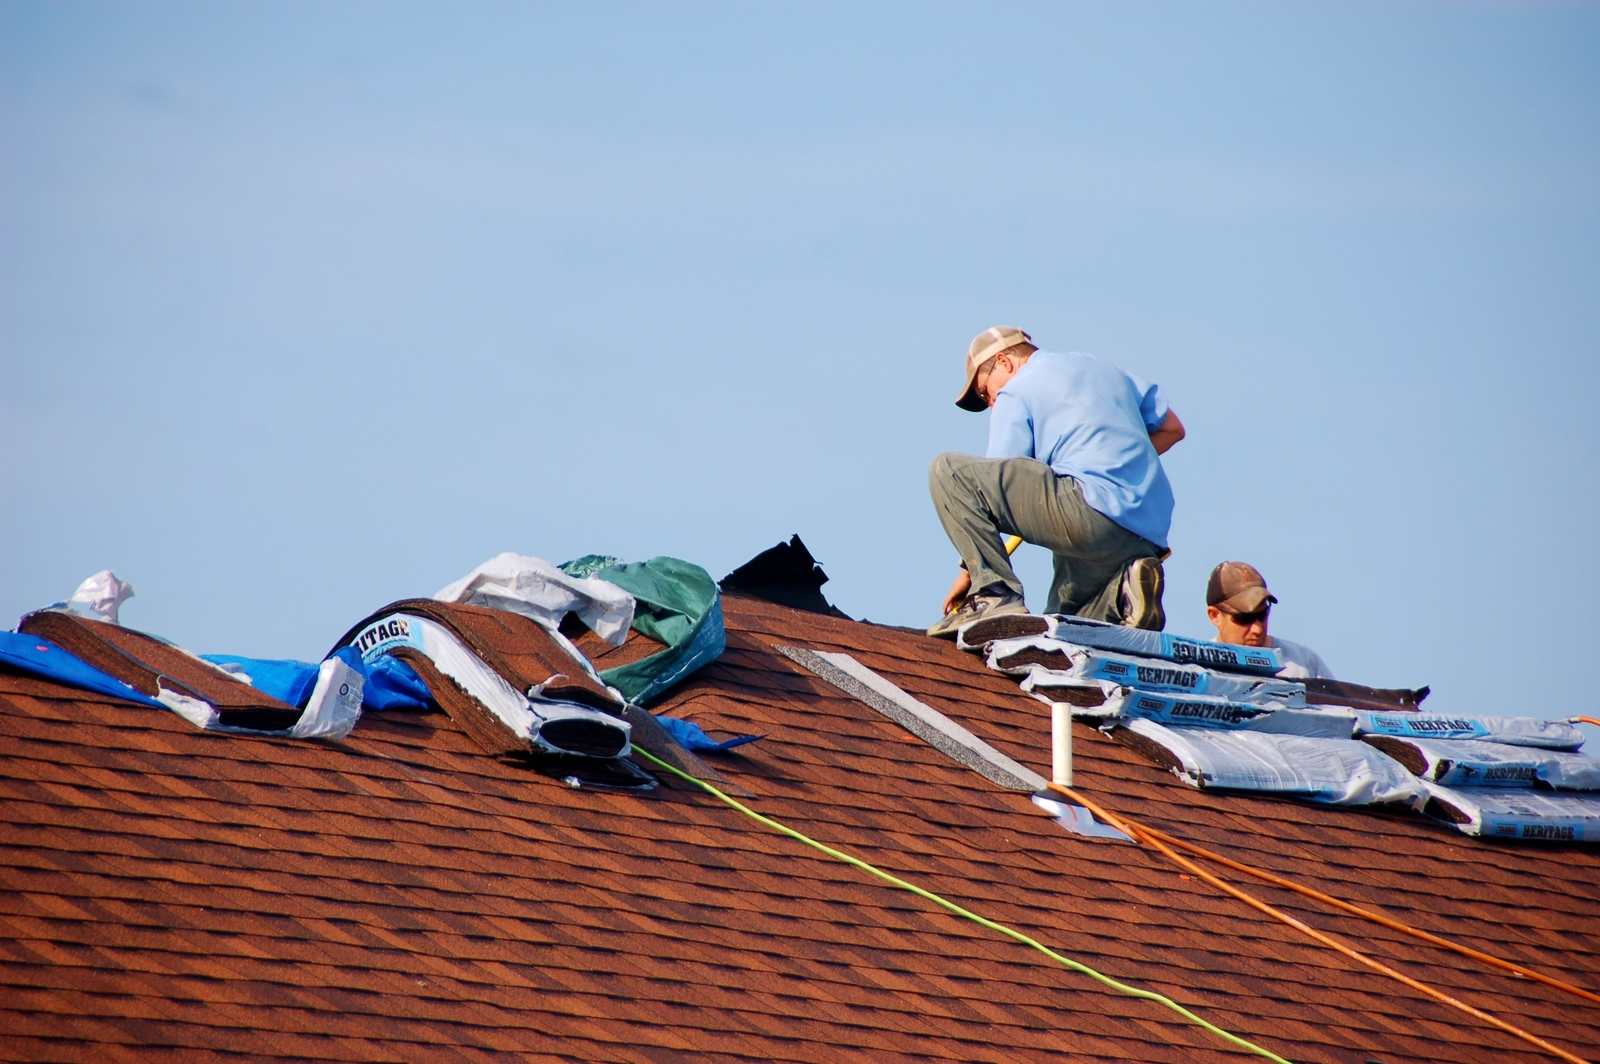 How to know whether to repair, patch, or replace your roof